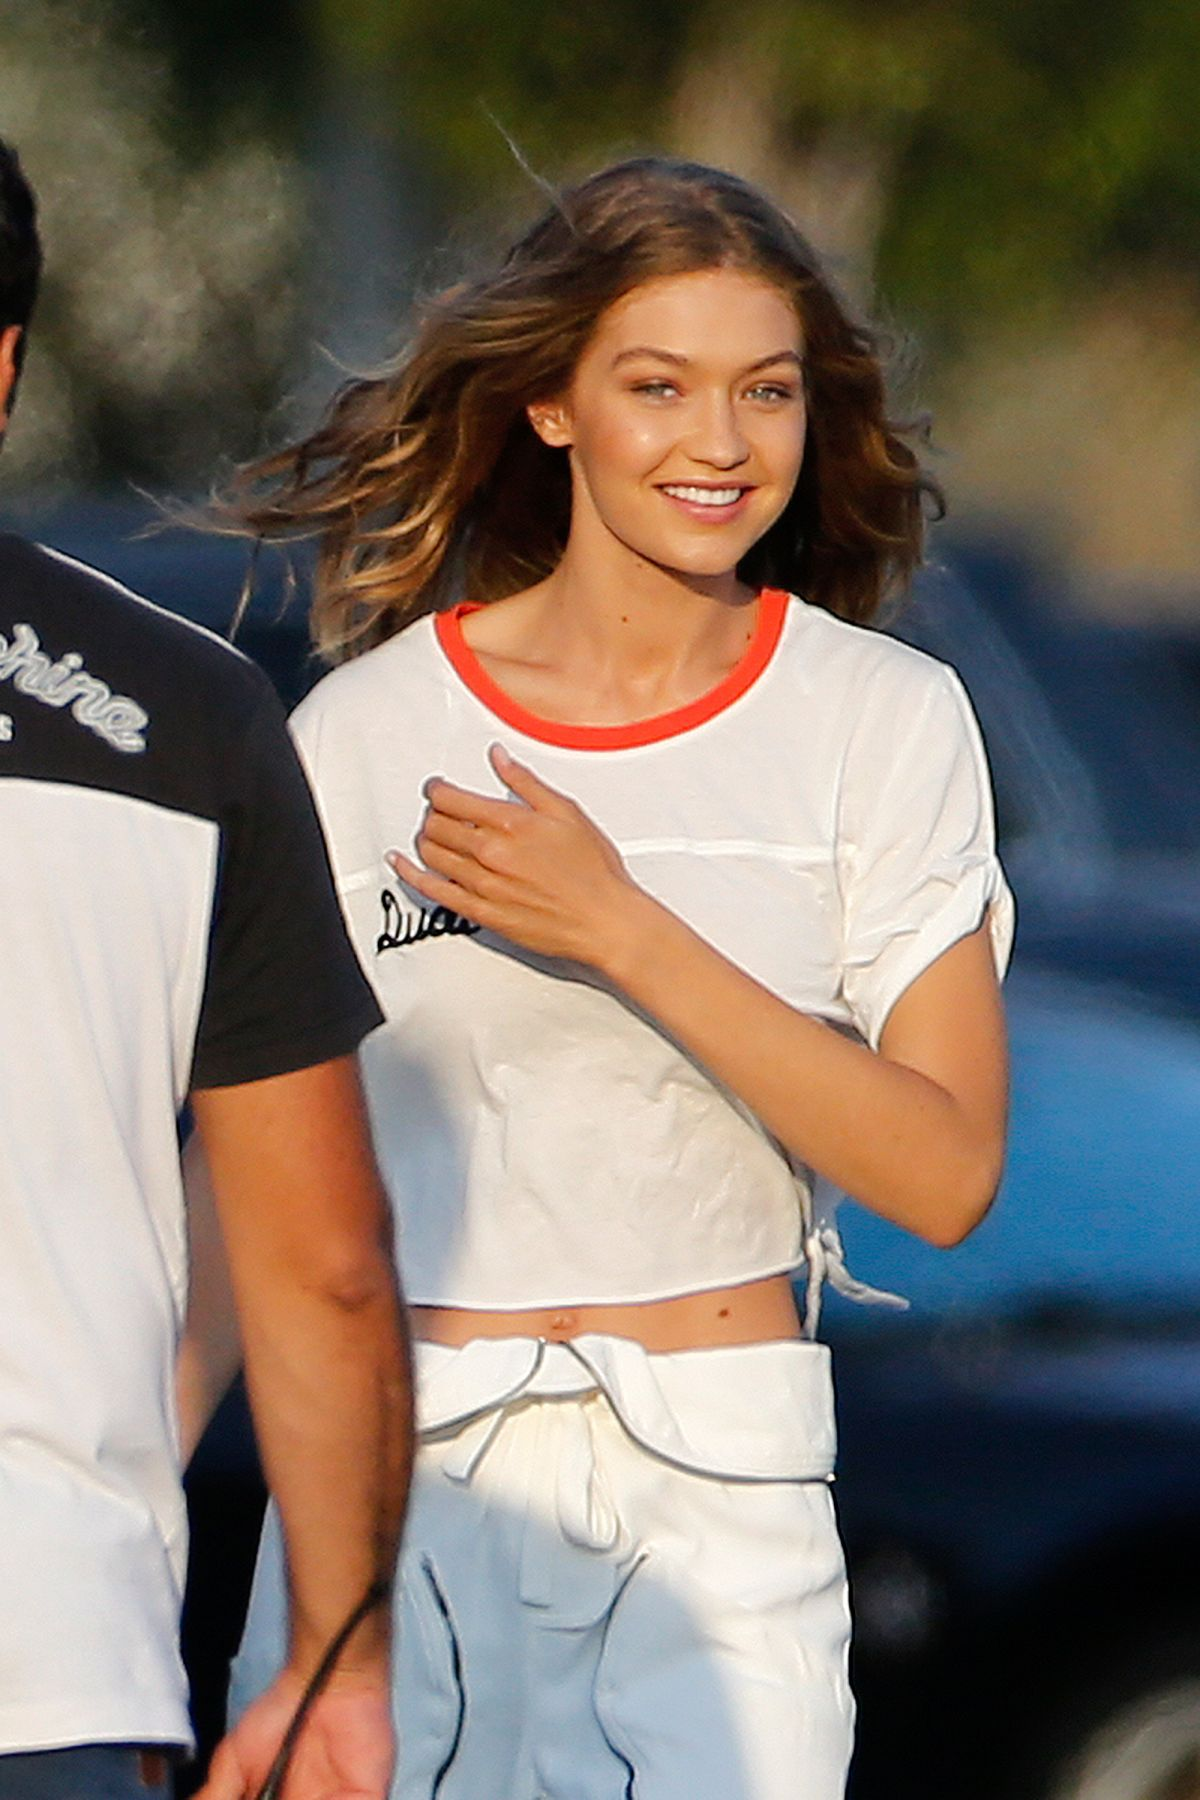 Gigi Hadid At A Photoshoot In Los Angeles 07 28 2016